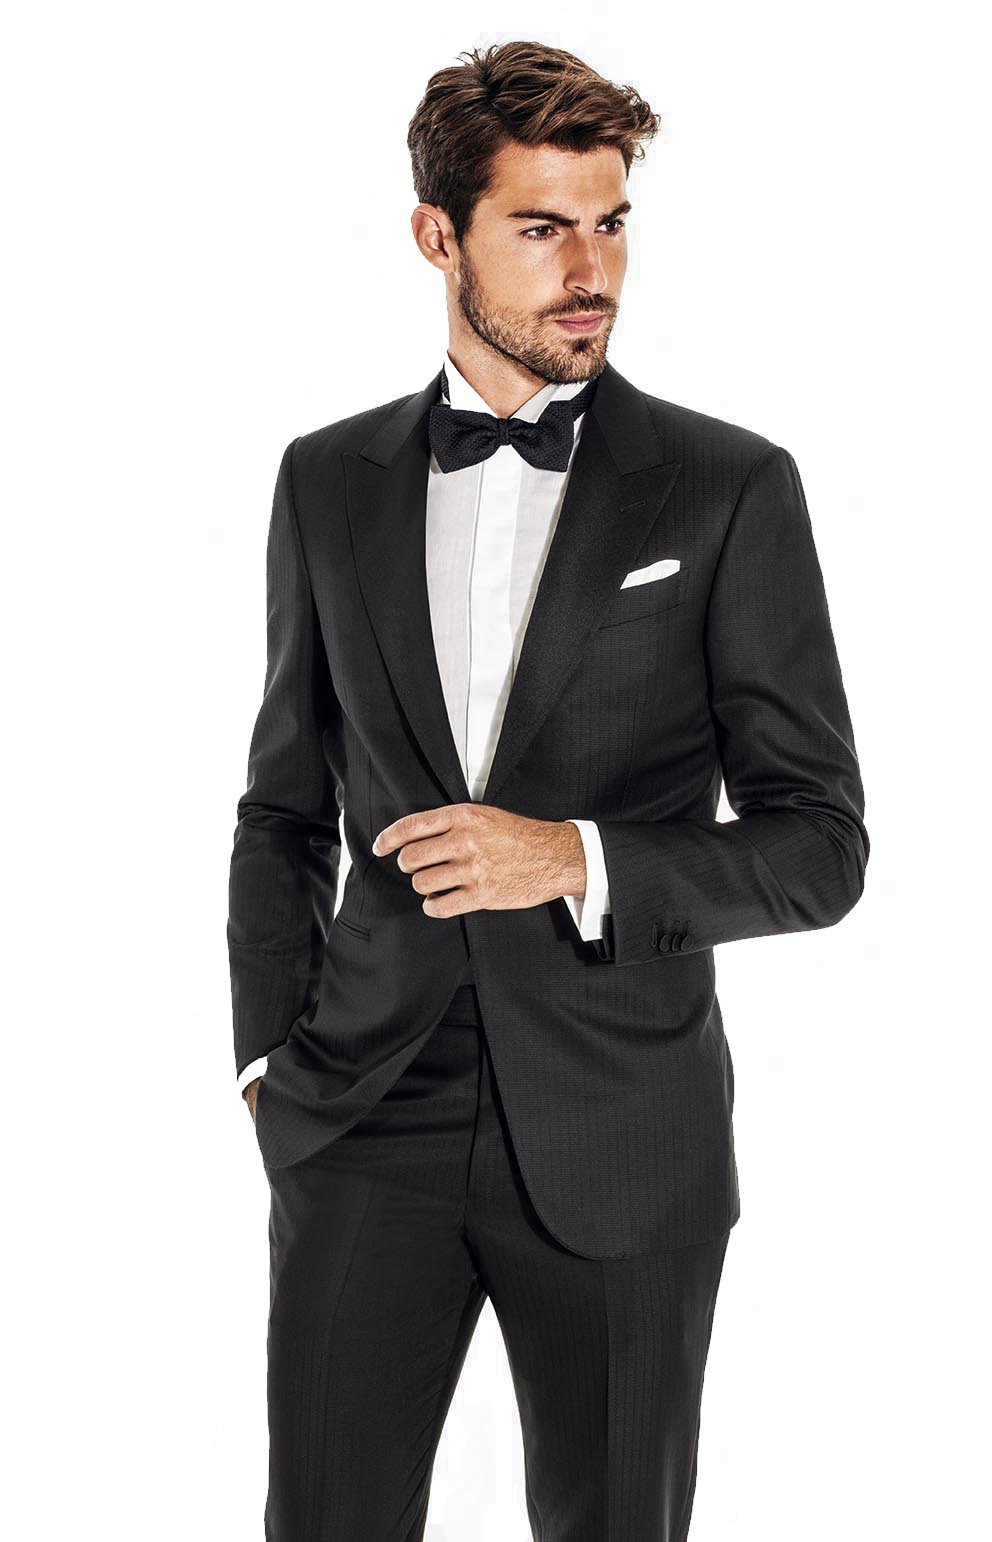 Man In Suit PNG Download Image.